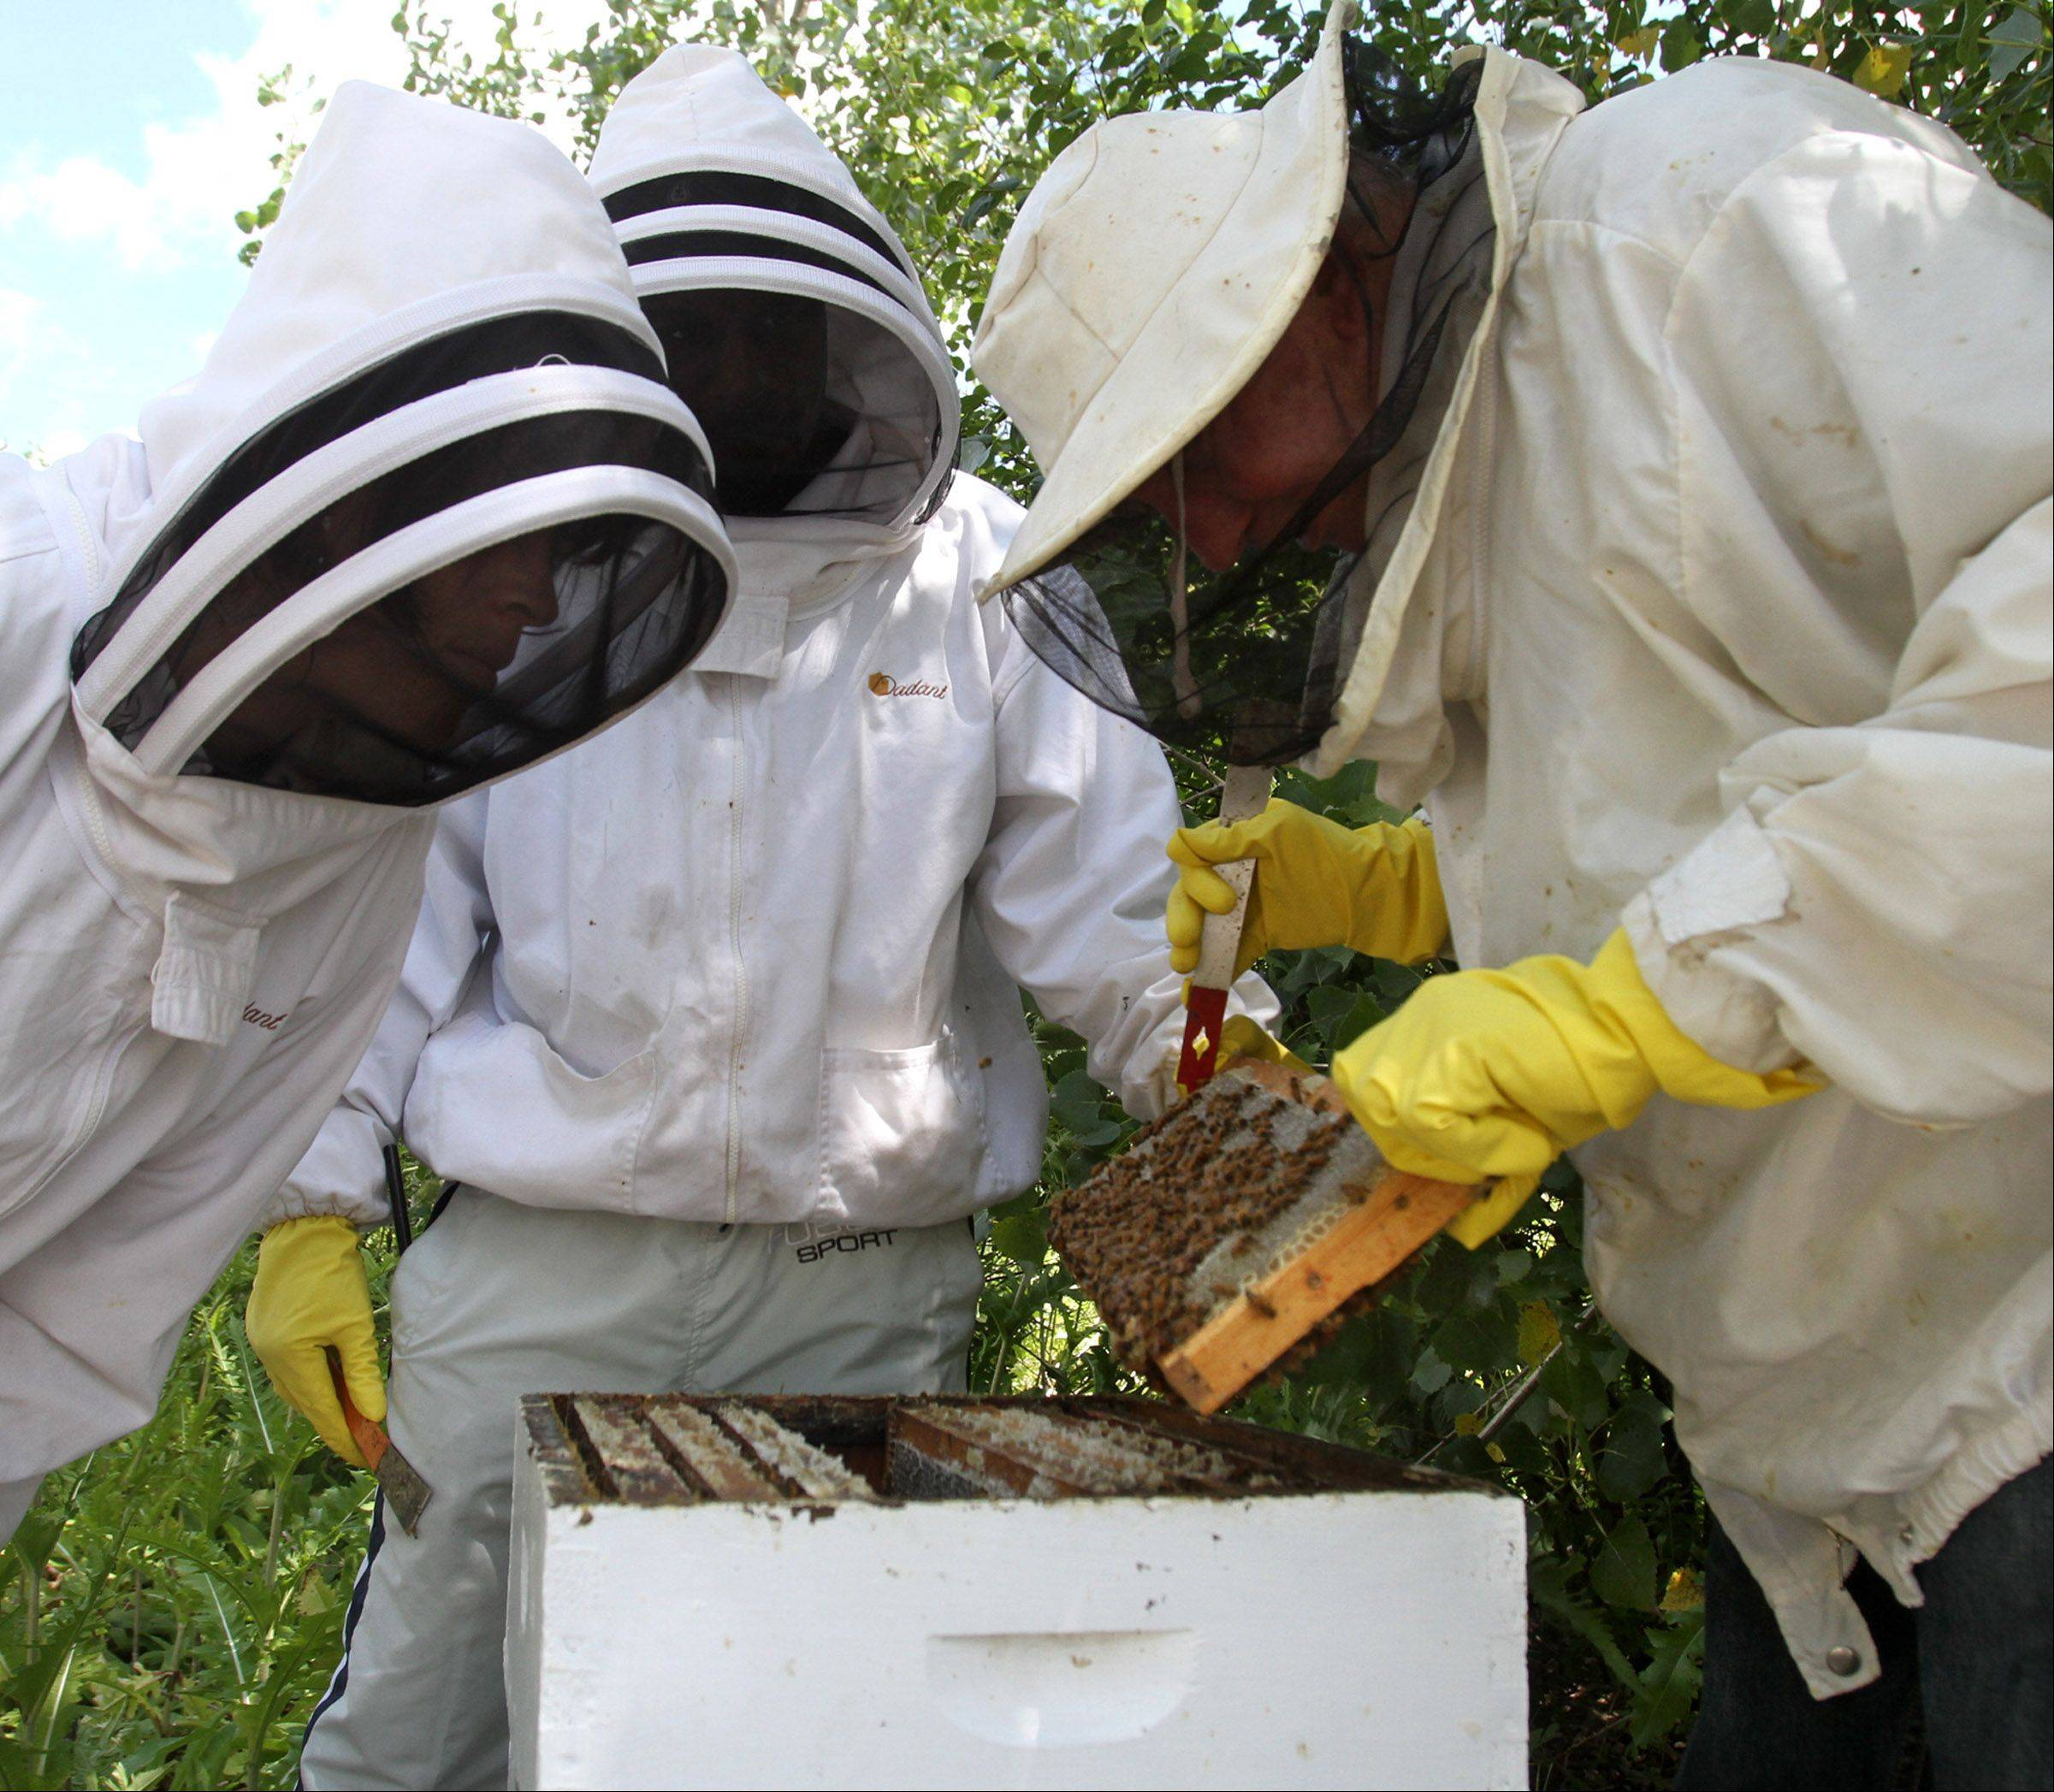 Head beekeeper John Hansen, right, checks a frame from a beehive with Holley Blackwell, general manager with Sweet Beginnings, left, and Curtis Camp.